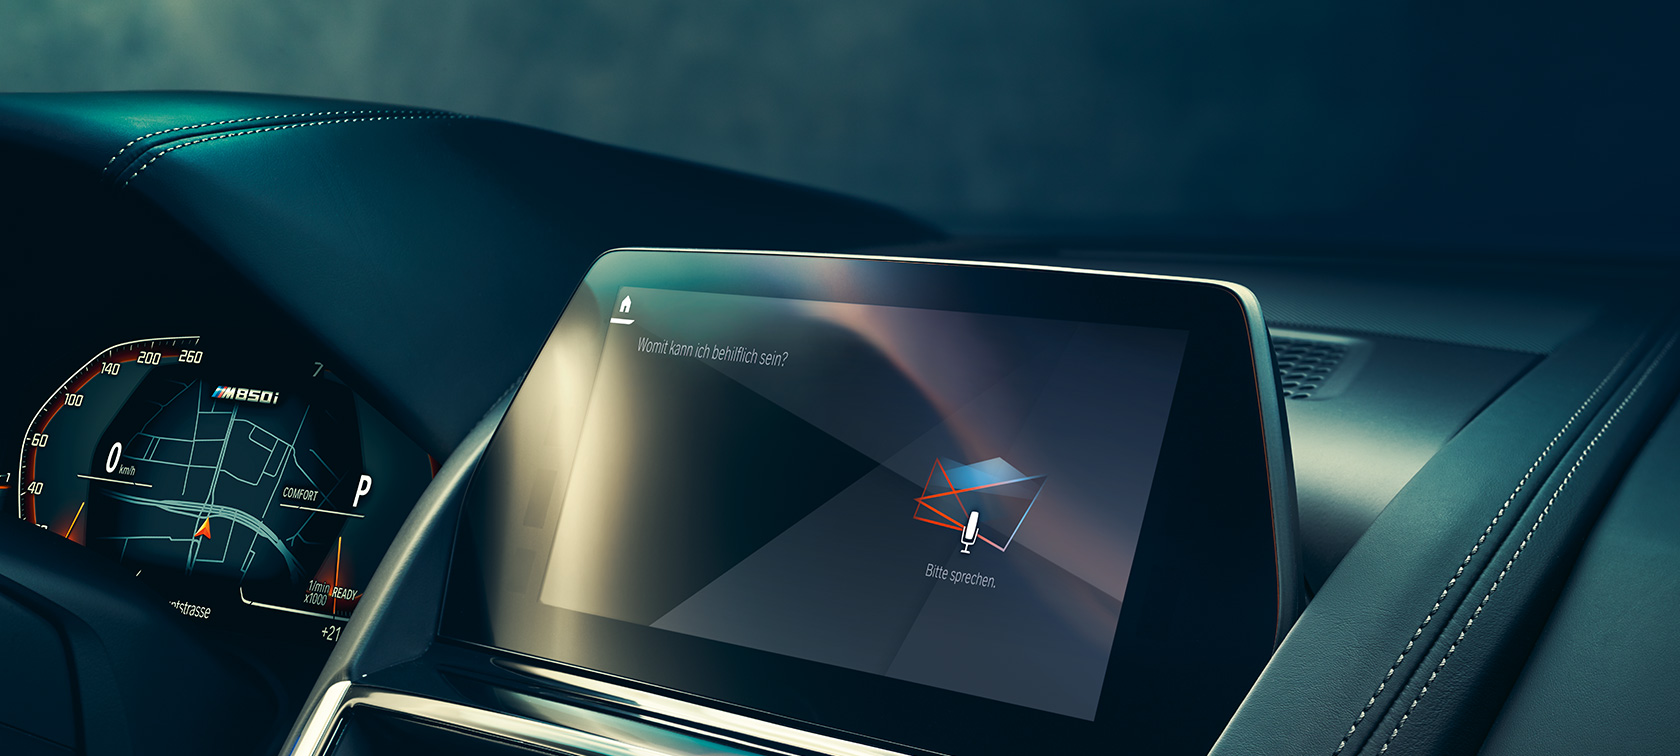 BMW Intelligent Personal Assistant Anzeige im Control Display